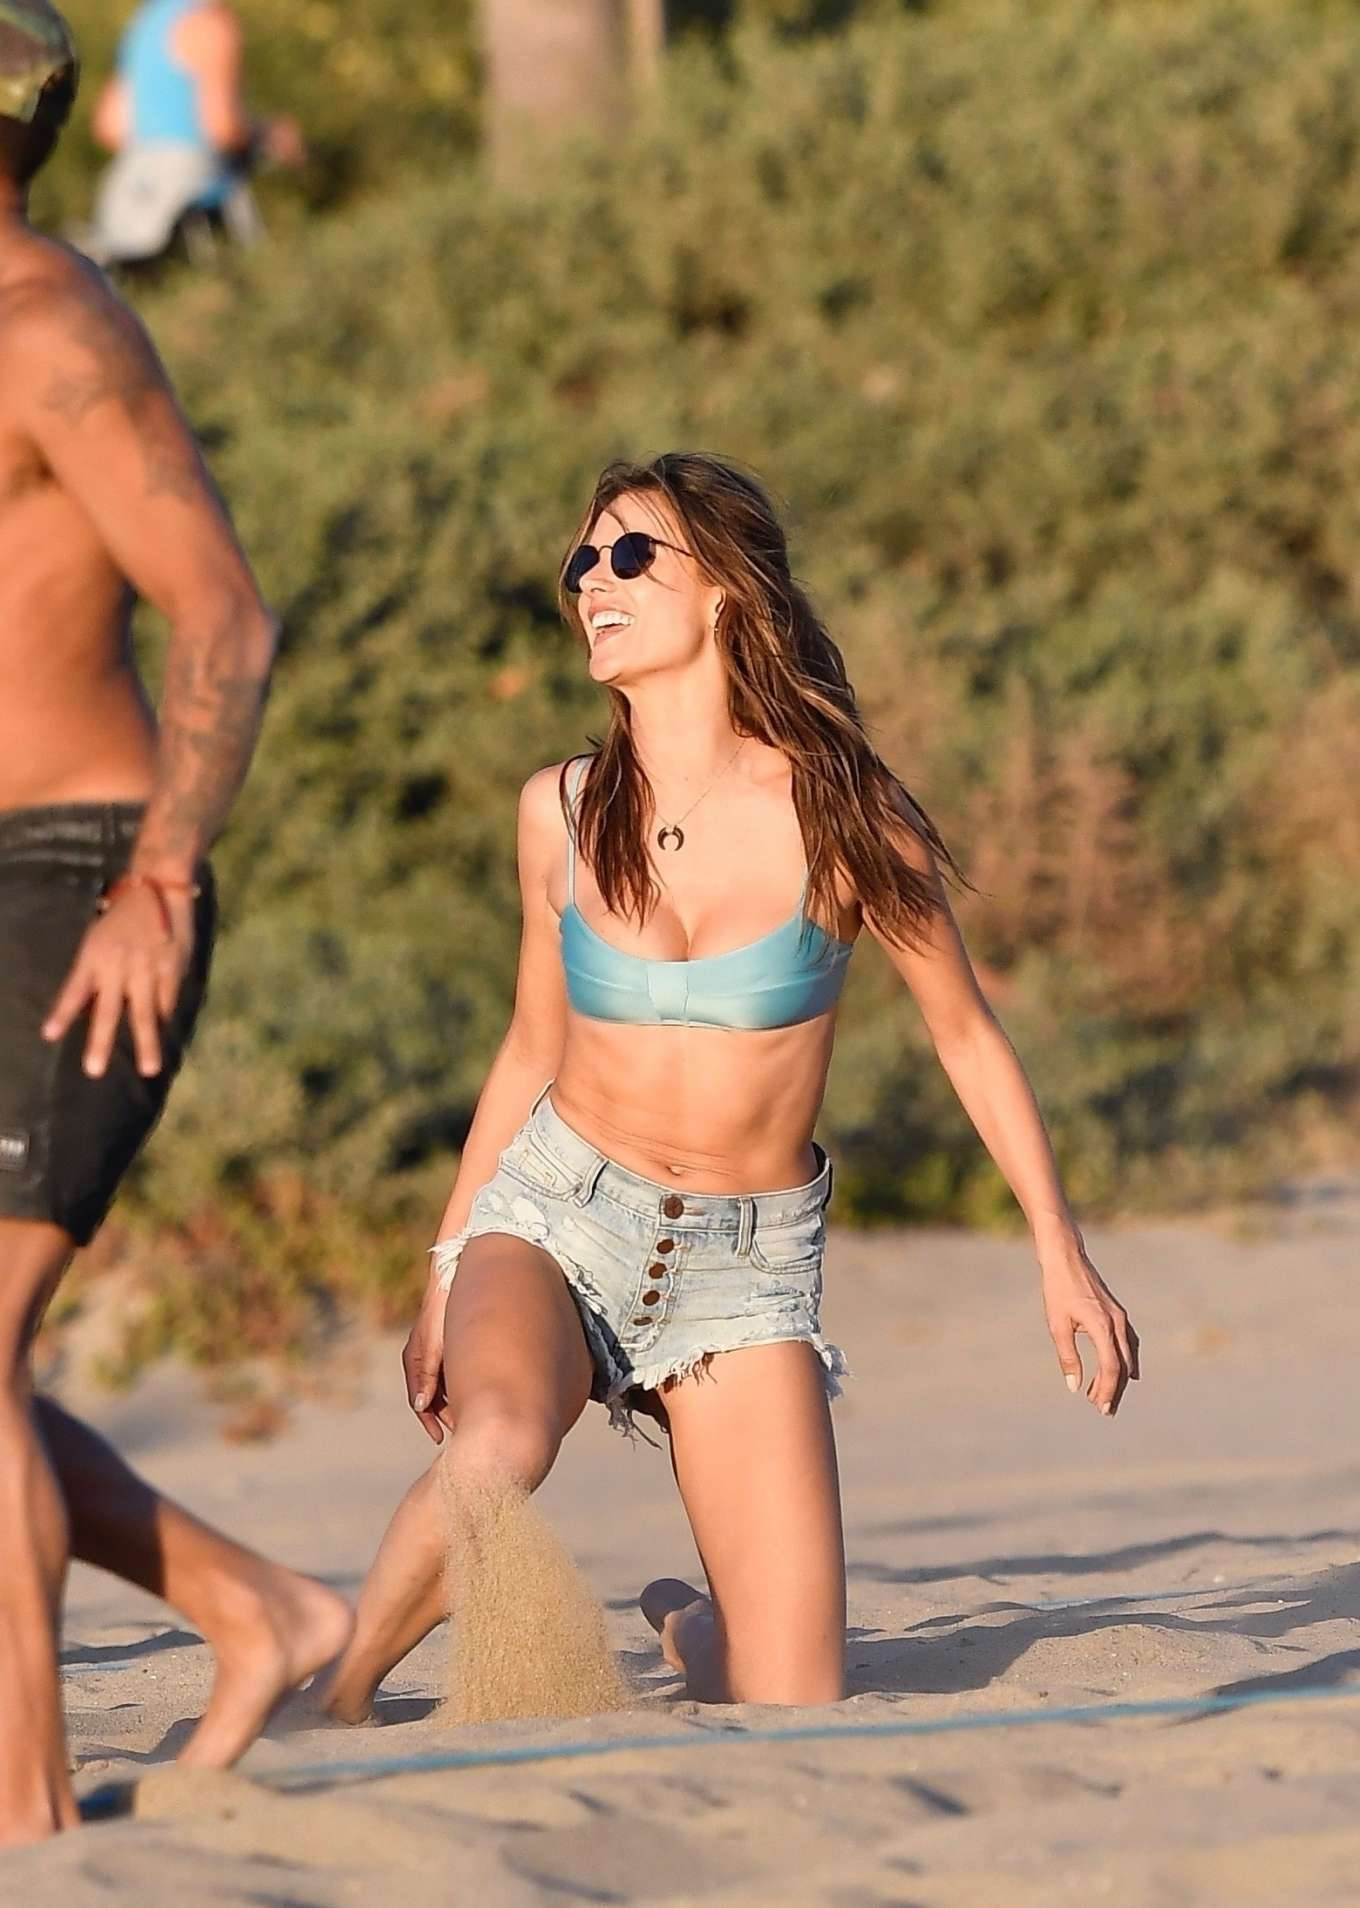 Alessandra Ambrosio 2019 : Alessandra Ambrosio in Bikini Top and Shorts-53